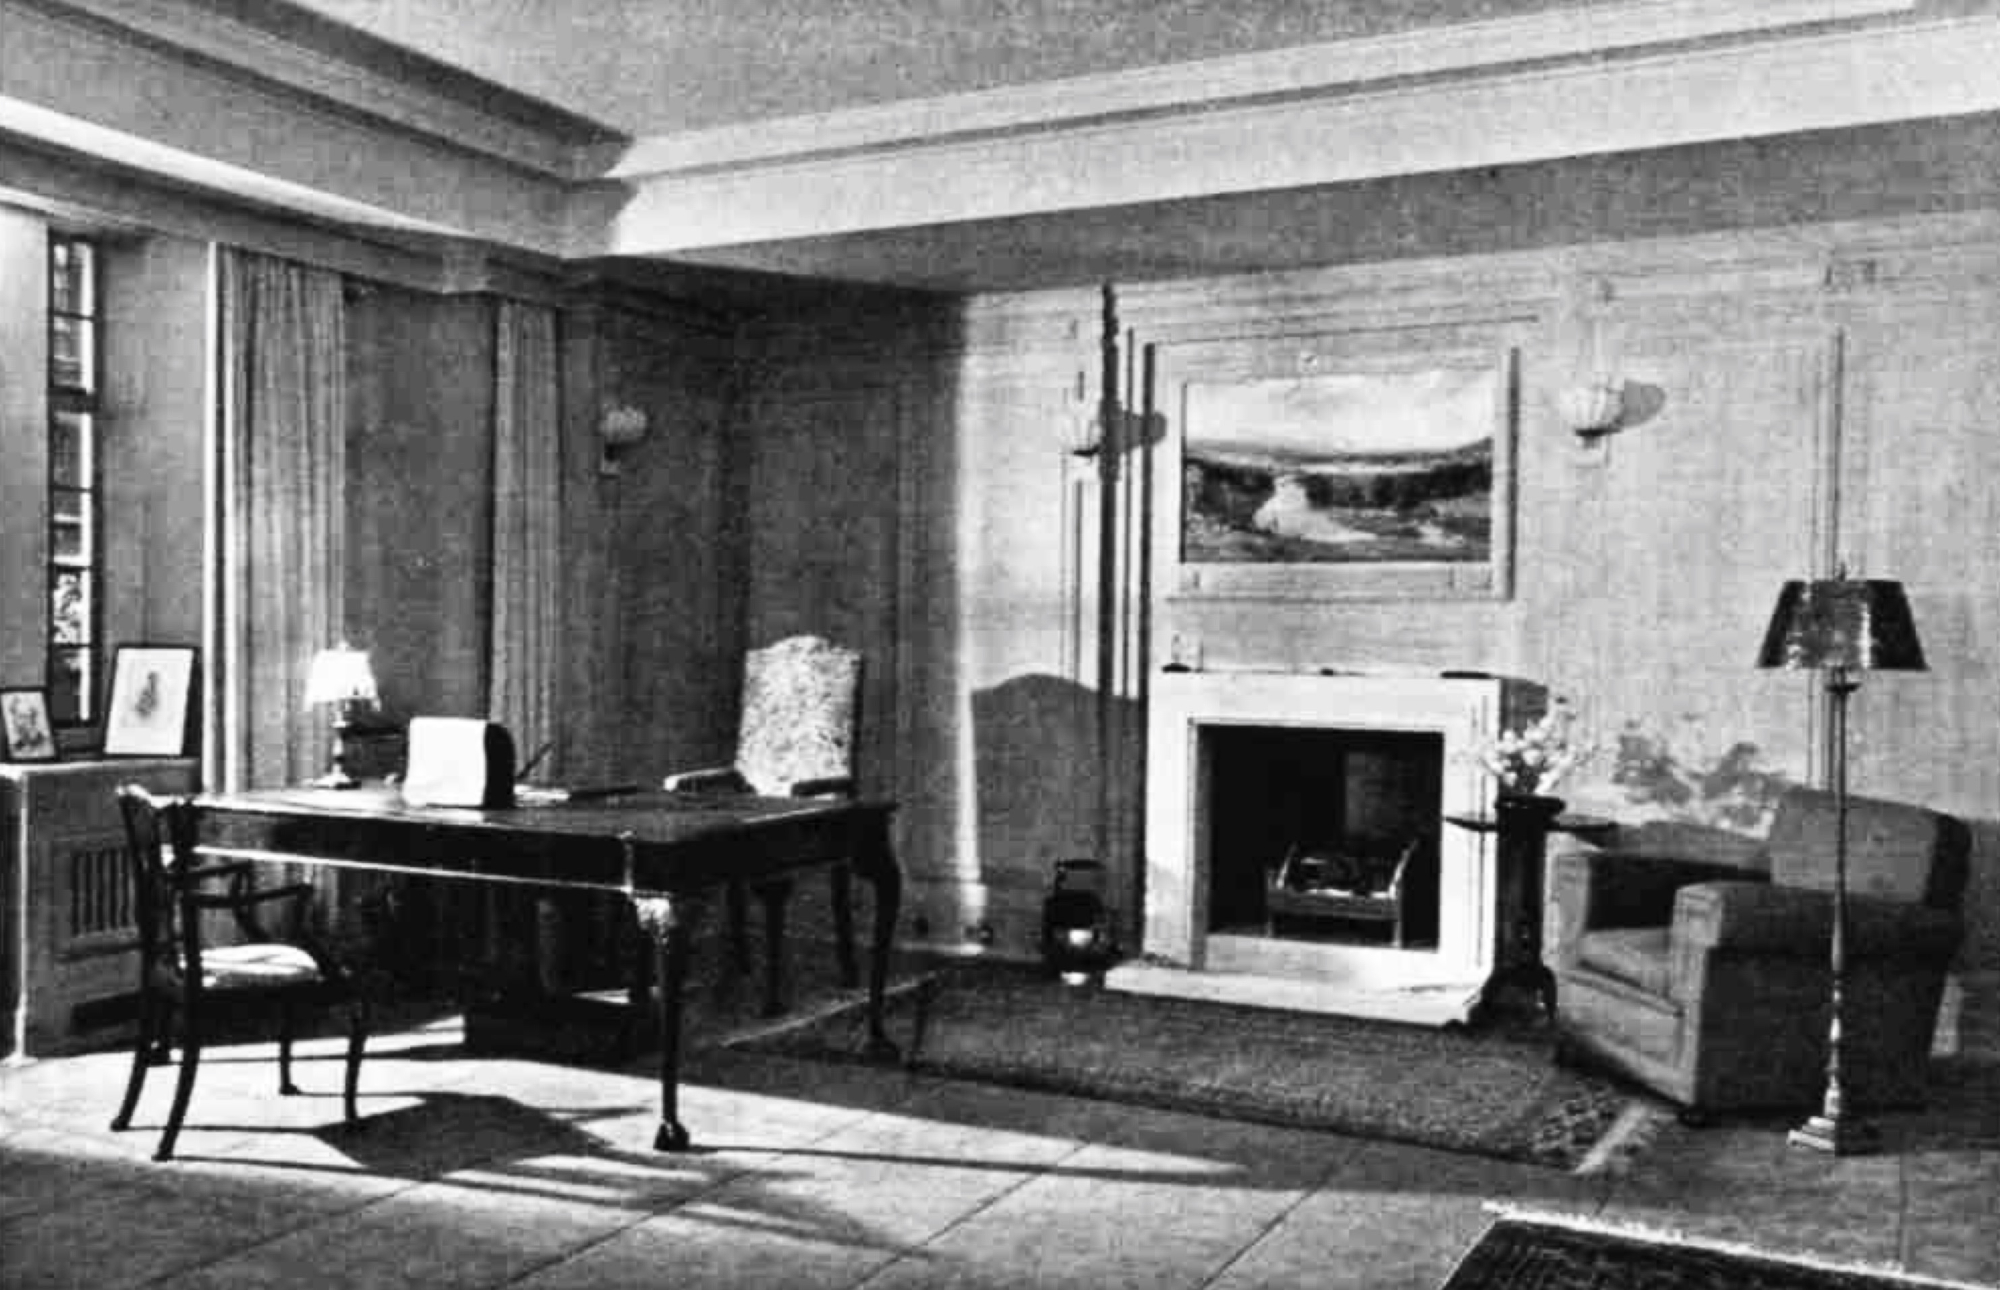 A room with wooden walls, a fireplace and an ornate desk with one commanding chair and one basic chair